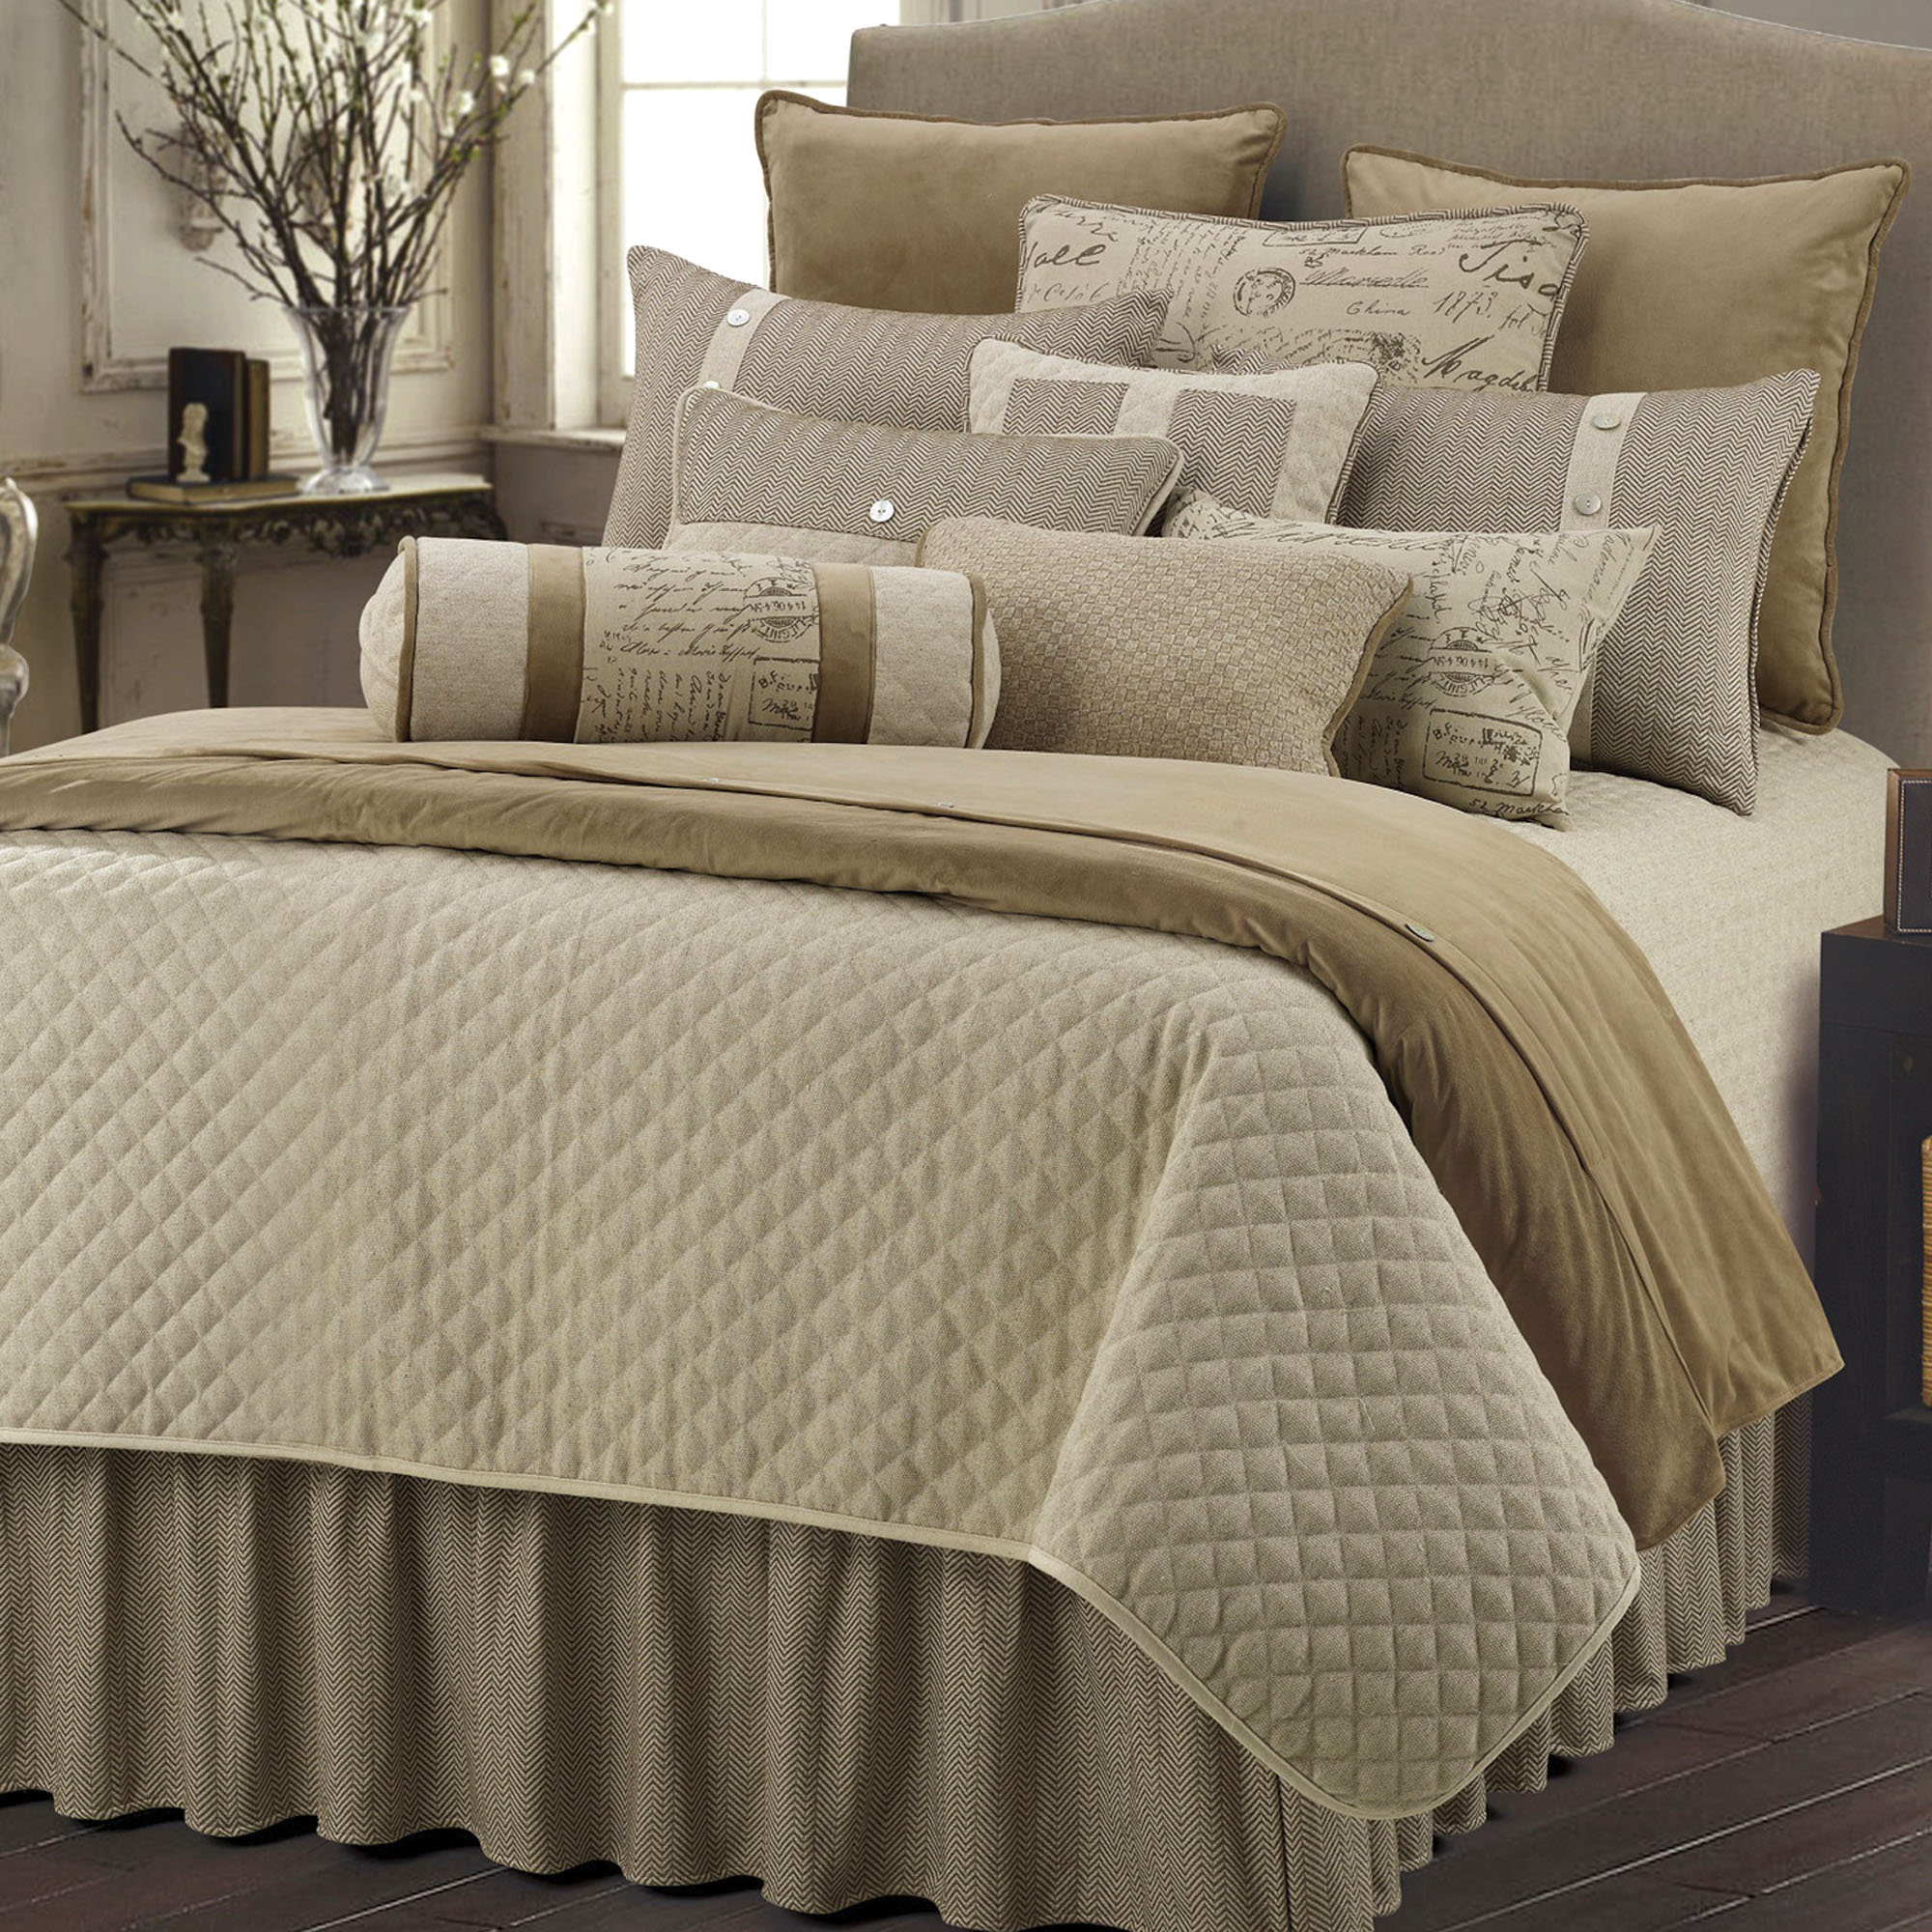 Coverlet Vs Quilt What Is Significant Difference